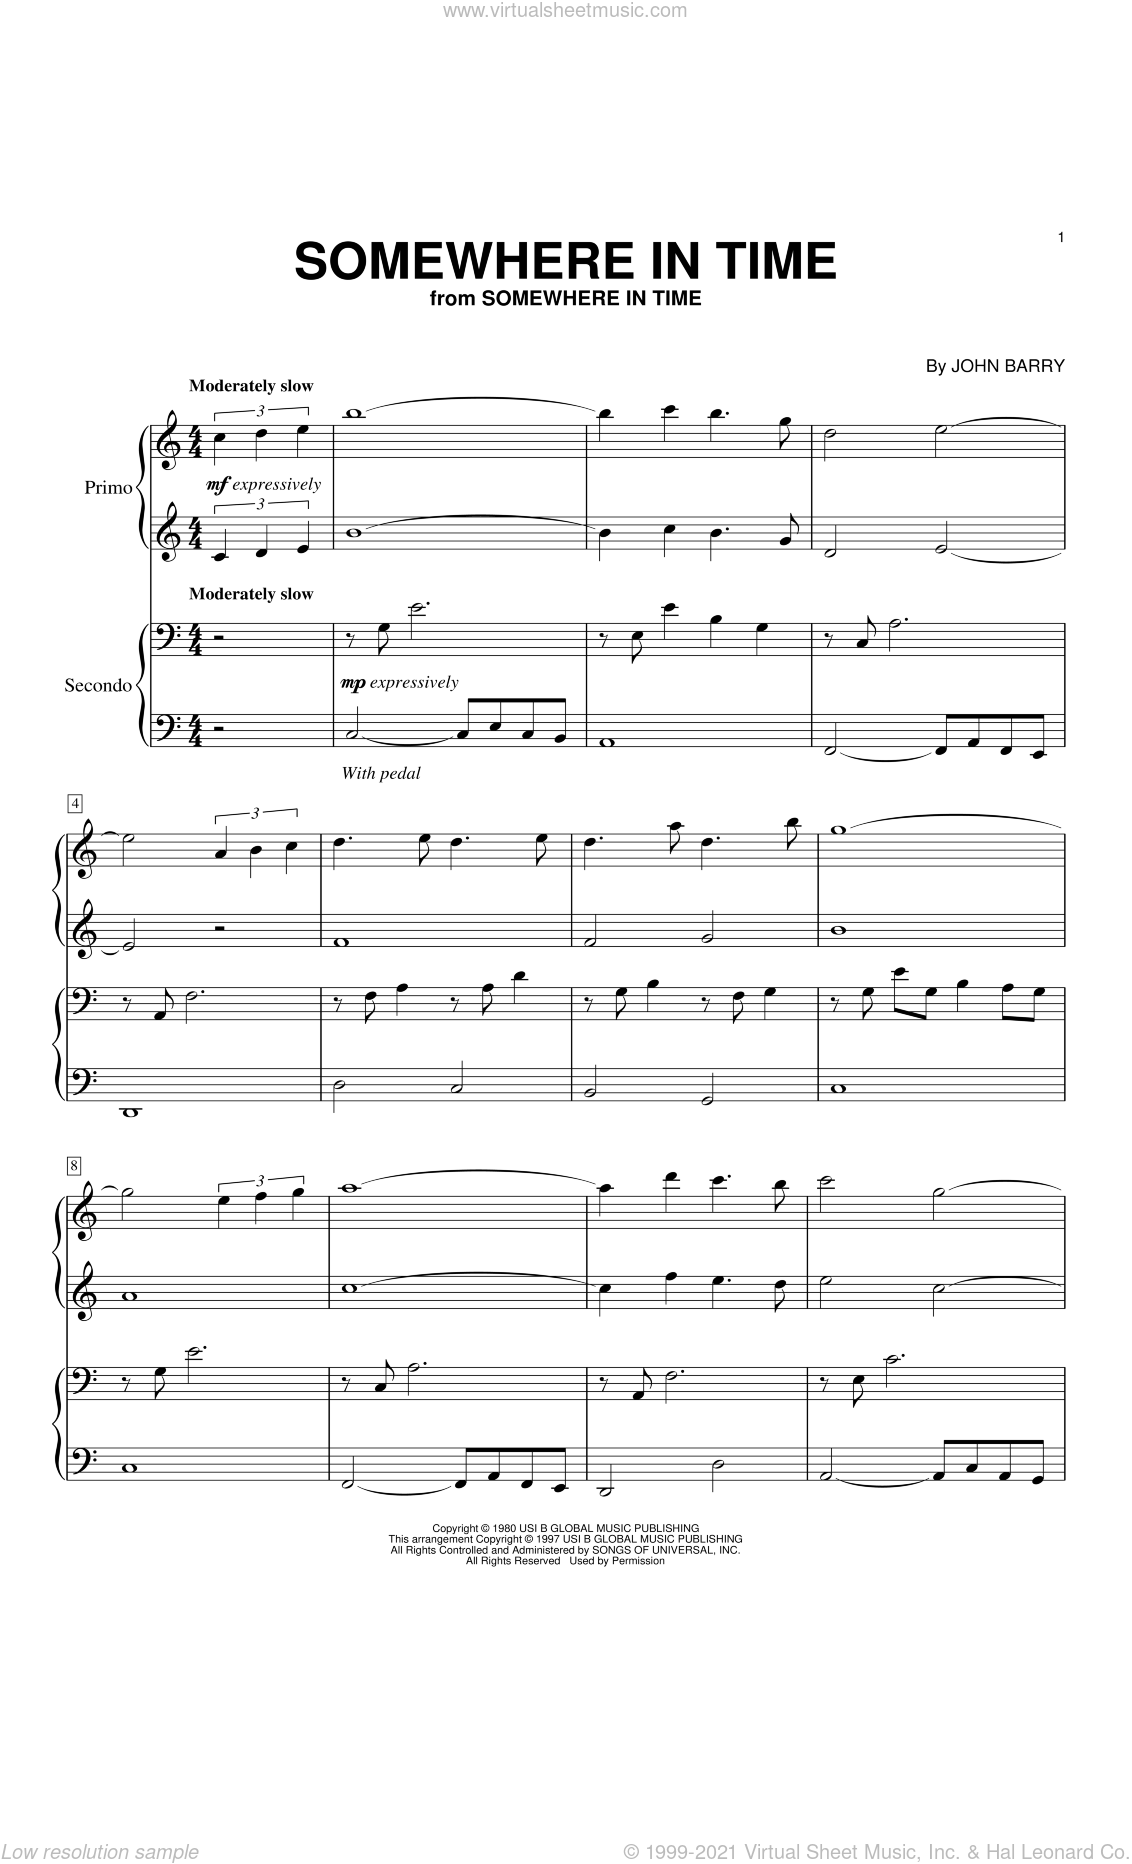 Somewhere In Time sheet music for piano four hands by John Barry and B.A. Robertson, intermediate